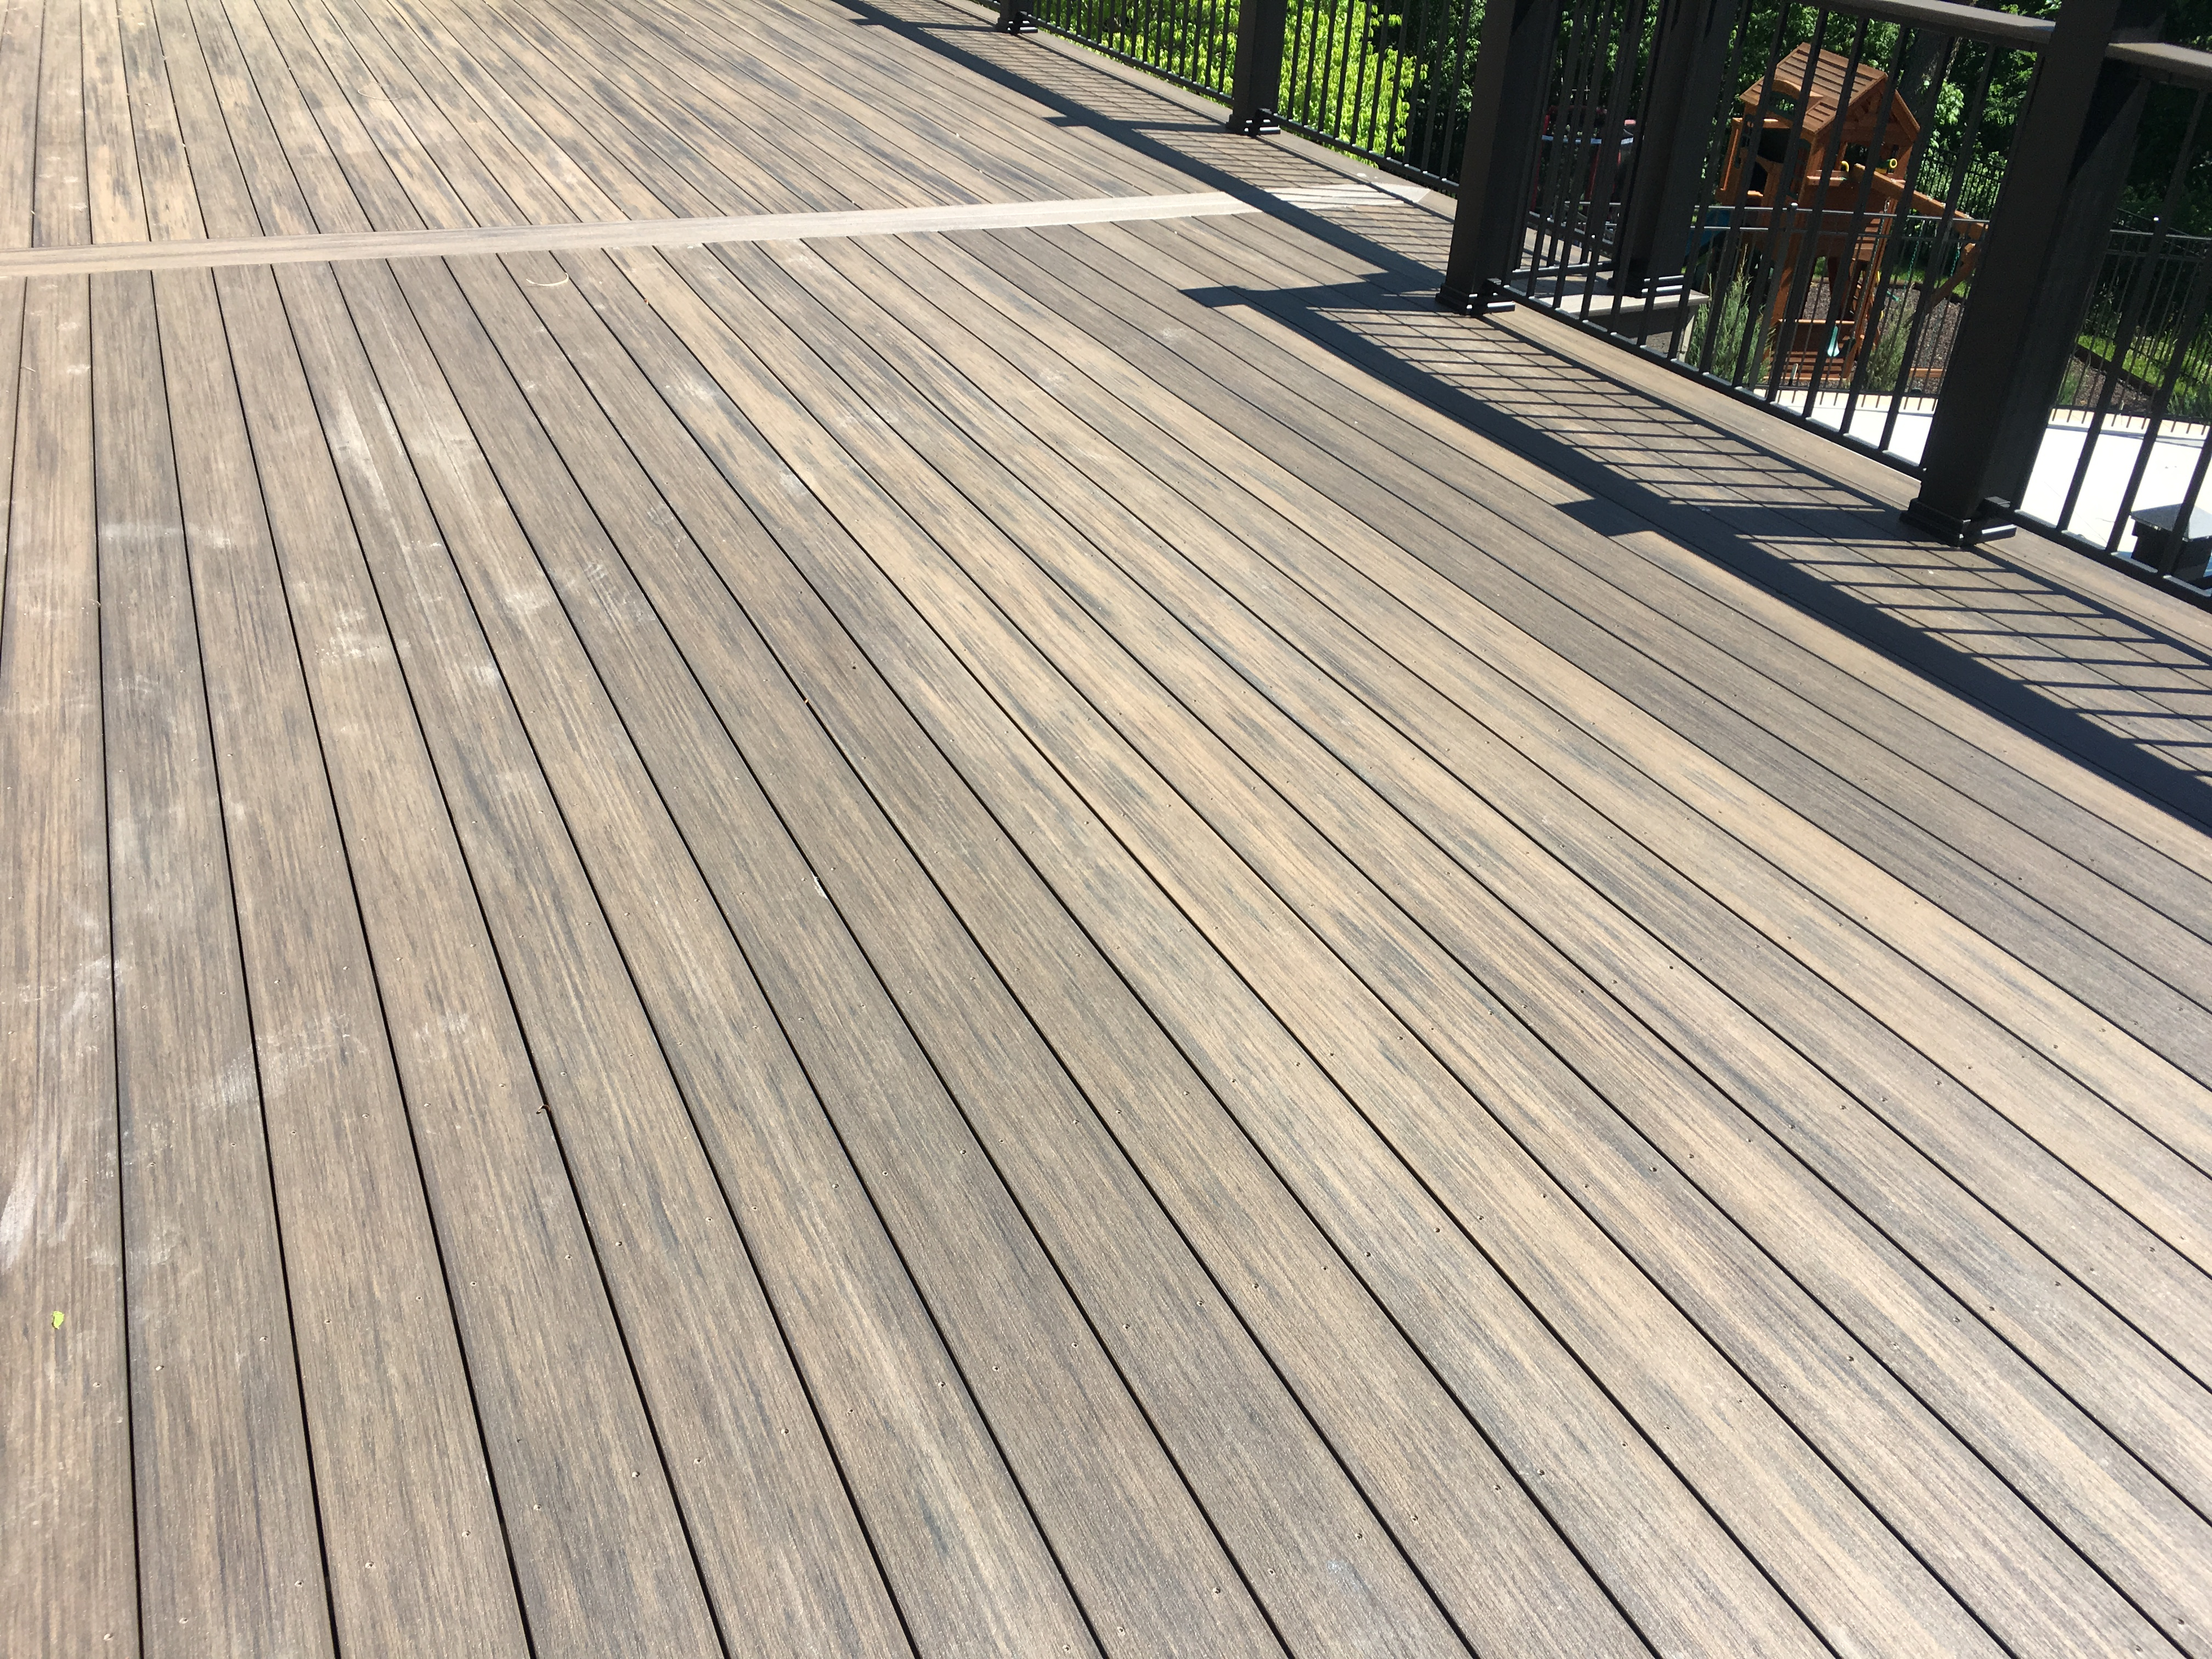 Deckorators Composite Deck Pictures Built All Weather Decks in sizing 4032 X 3024